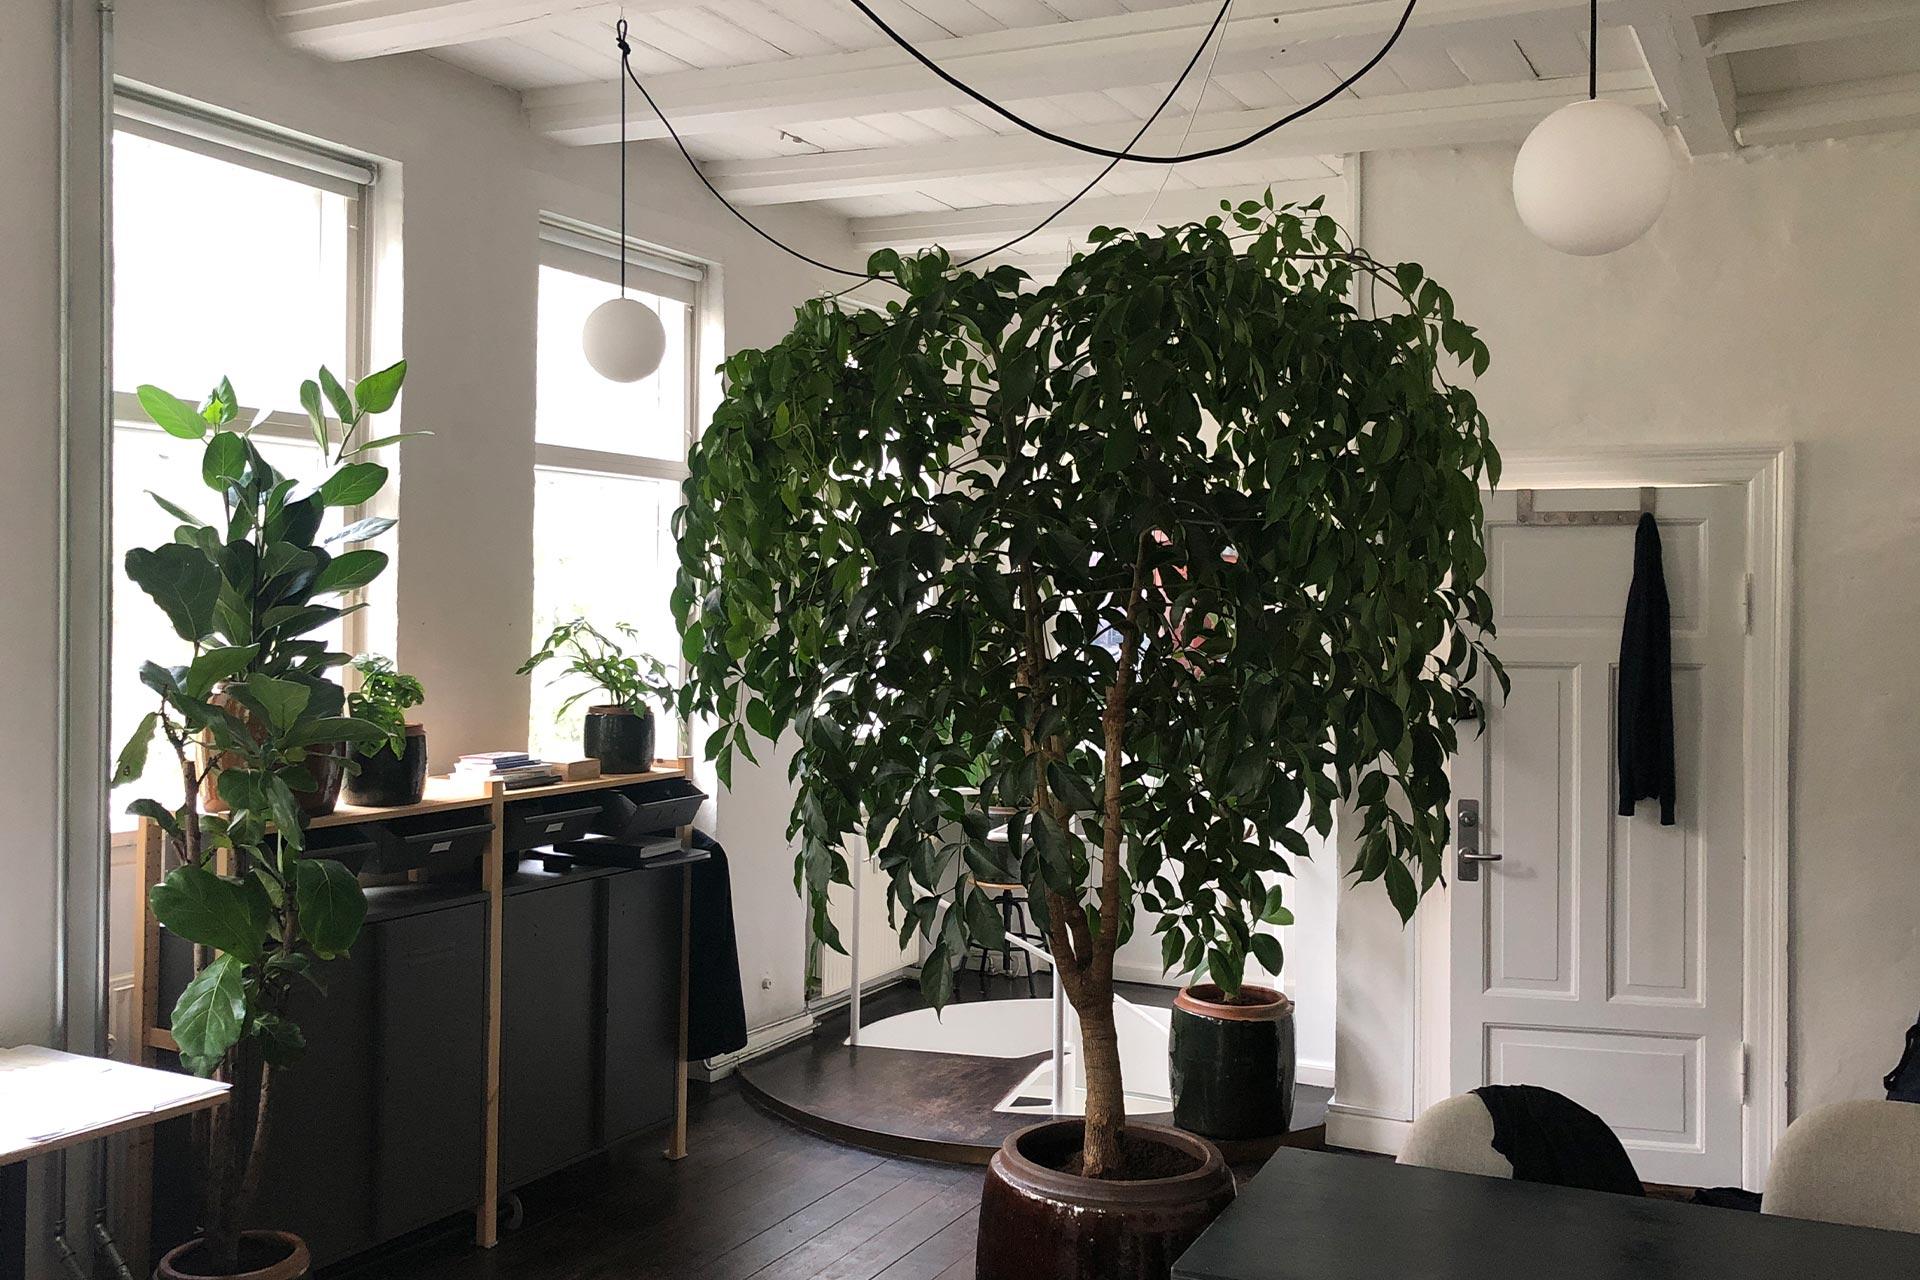 Big green plant in an office